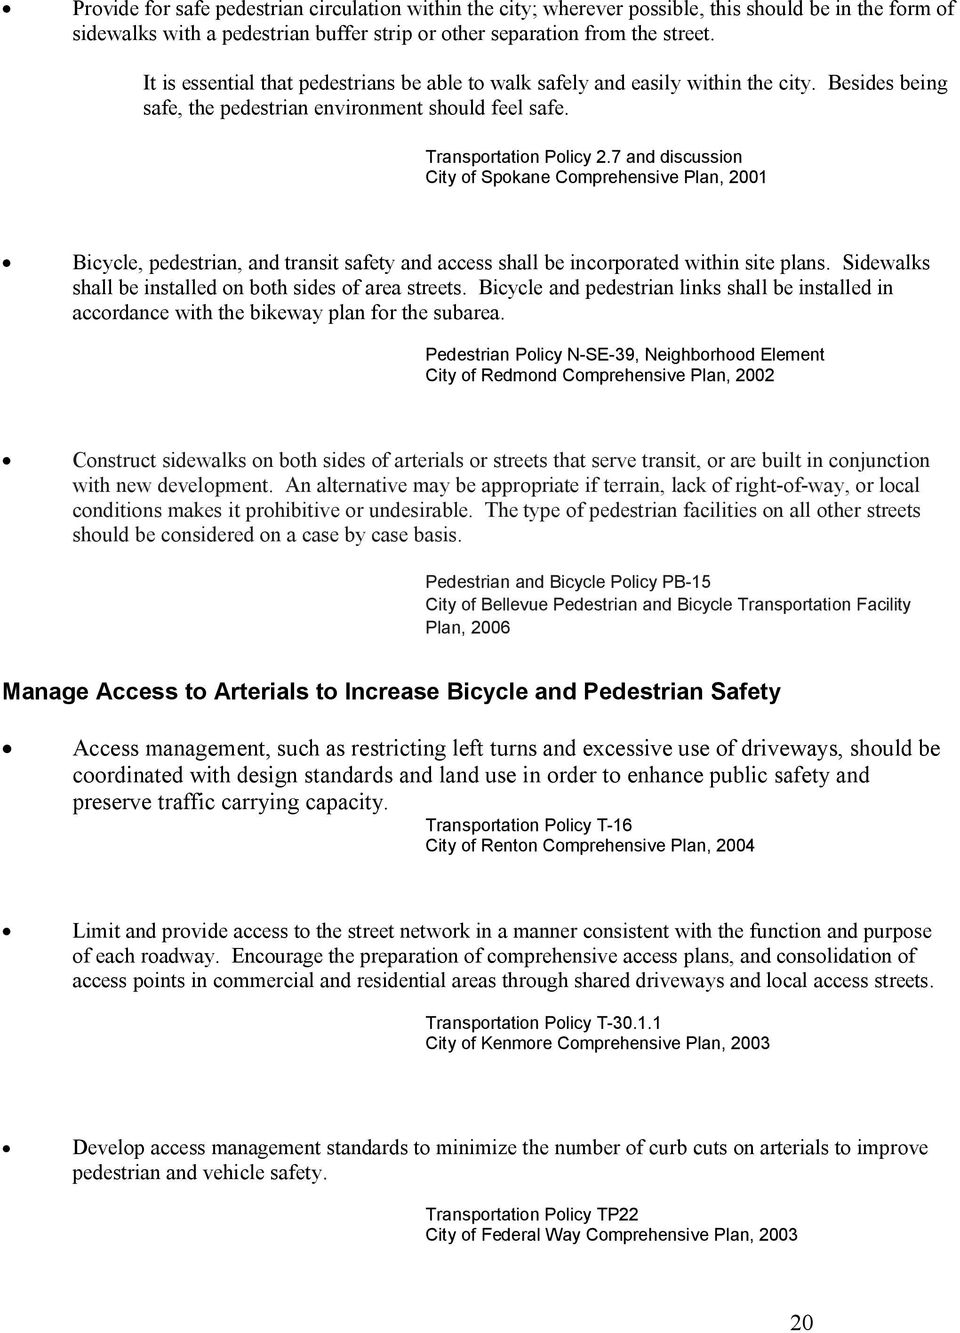 7 and discussion City of Spokane Comprehensive Plan, 2001 Bicycle, pedestrian, and transit safety and access shall be incorporated within site plans.